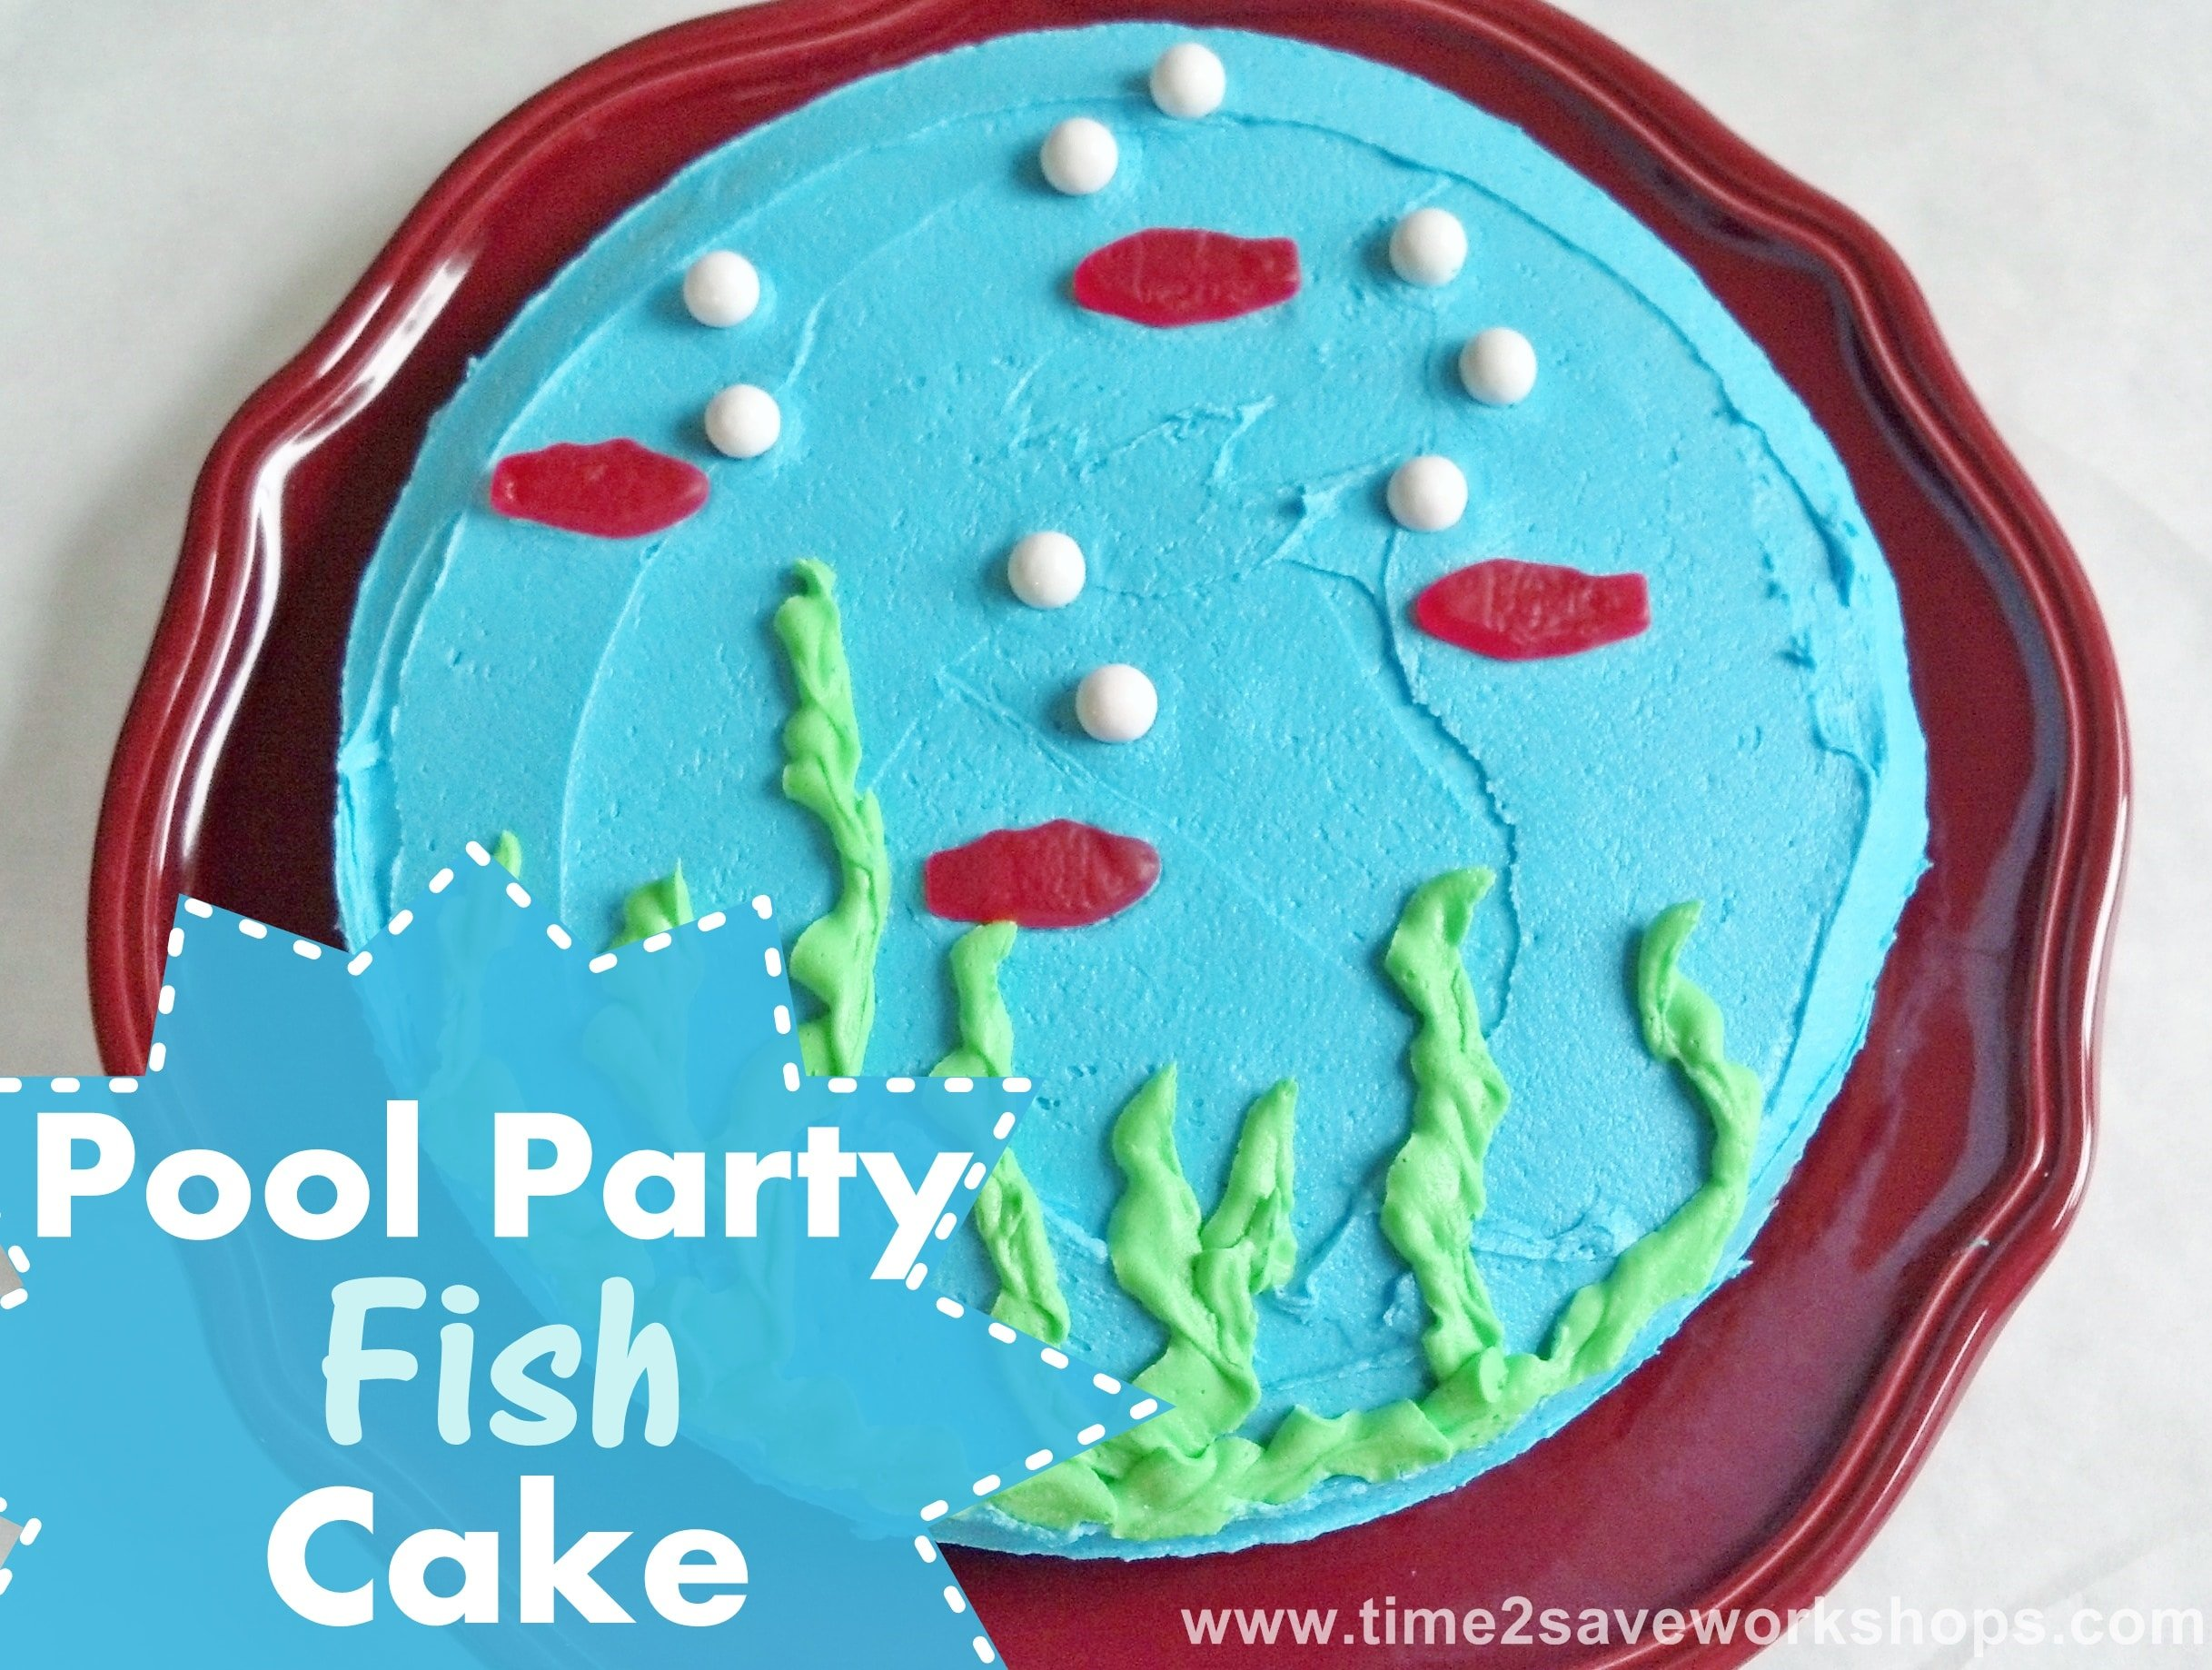 Pool Party Fish Cake Recipe (Great for Father's Day too!)